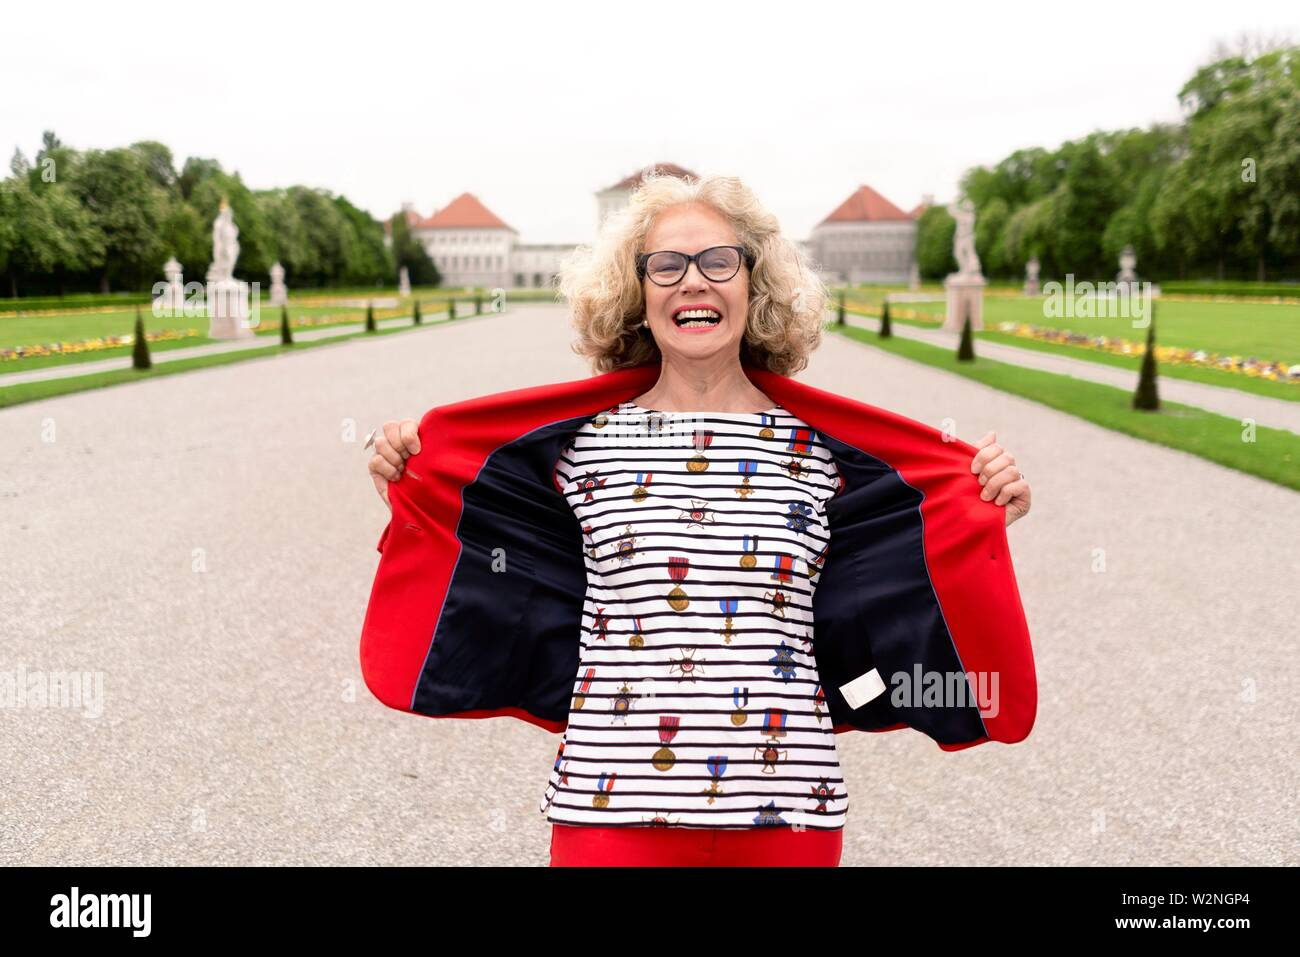 happy extrovert senior woman (67 years old) in park at touristic sight Nymphenburg palace, in Munich, Germany. - Stock Image